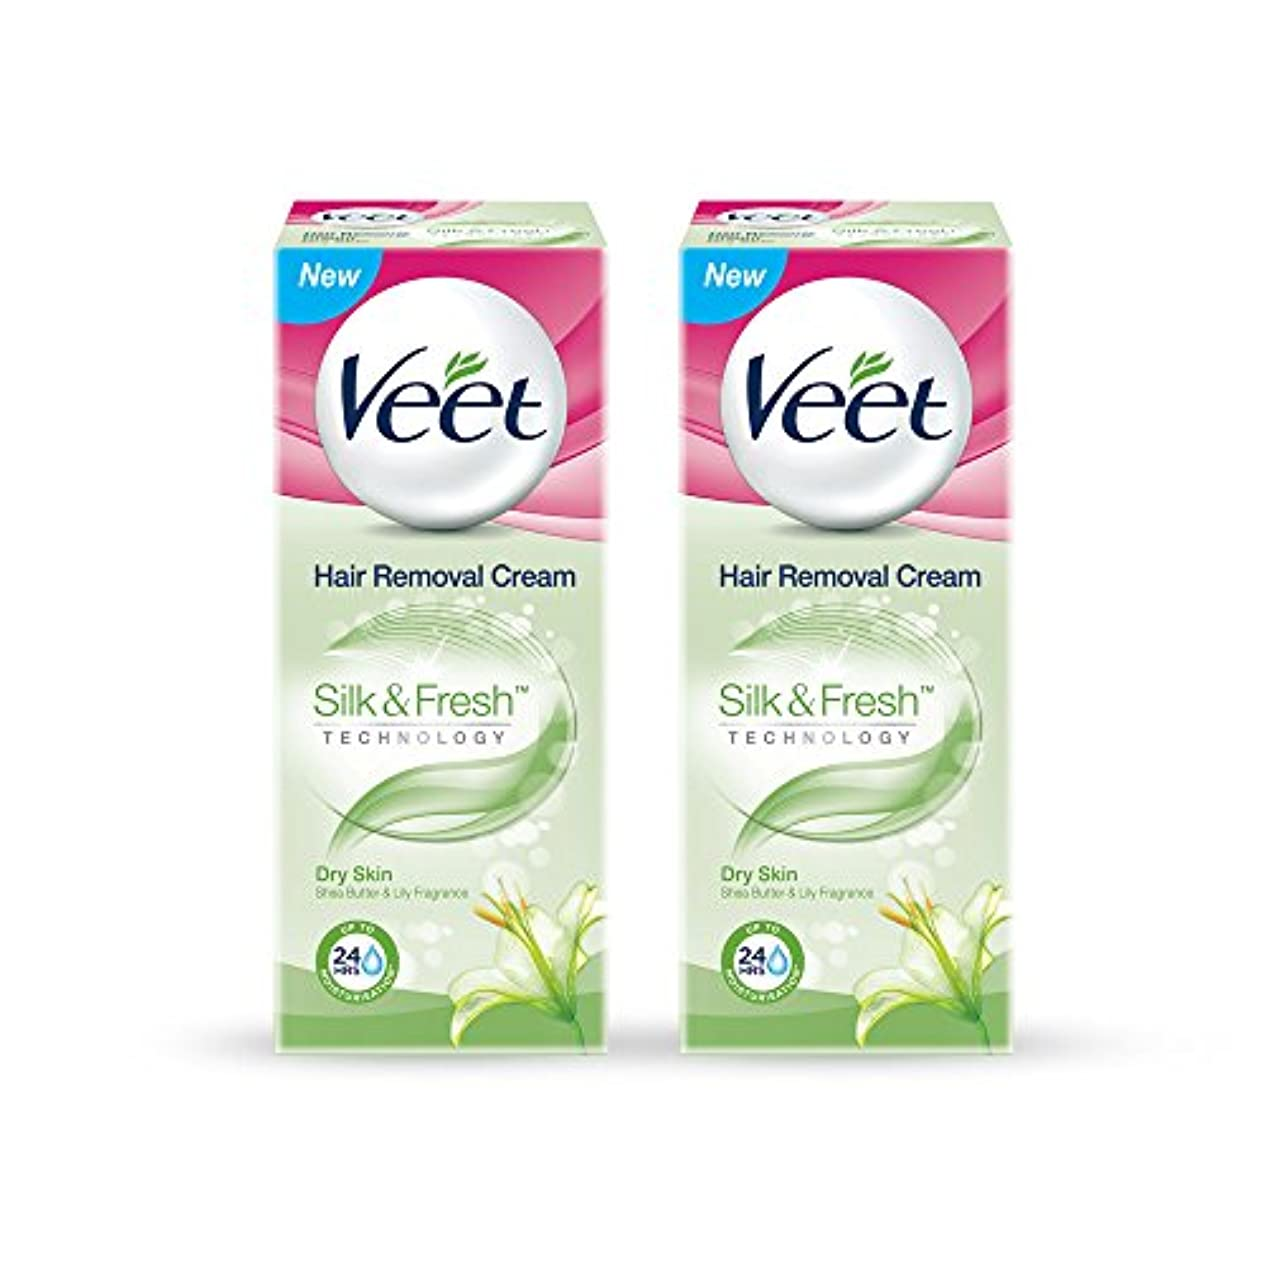 不快なリーガン句読点Veet Hair Removal Gel Cream for Dry Skin with Shea Butter & Lily Fragrance 25 g (Pack of 2)